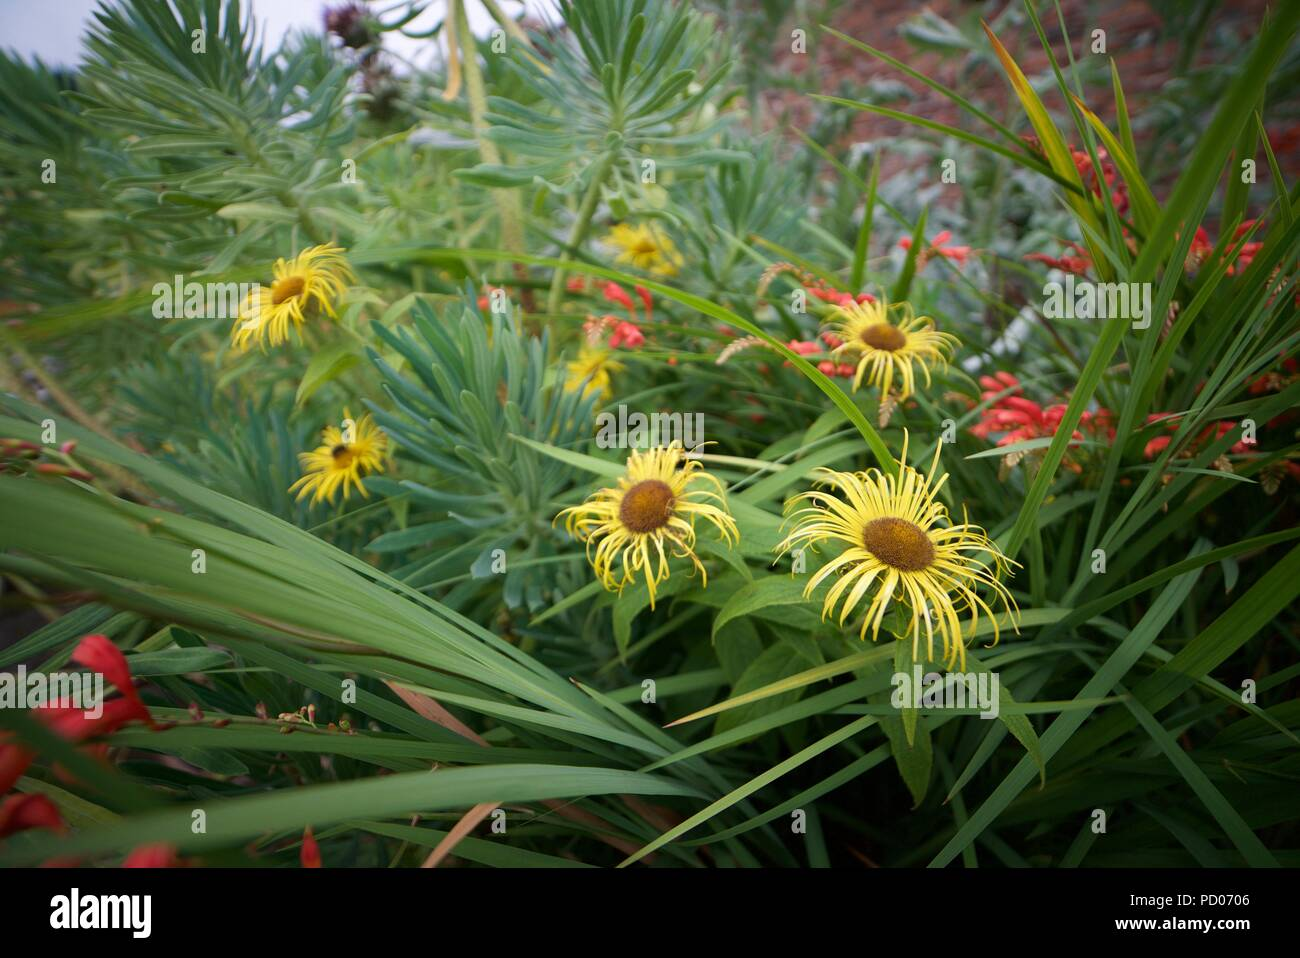 Long thin petals stock photos long thin petals stock images alamy inula hookeri flowers with long thin yellow petals hookers inula stock image mightylinksfo